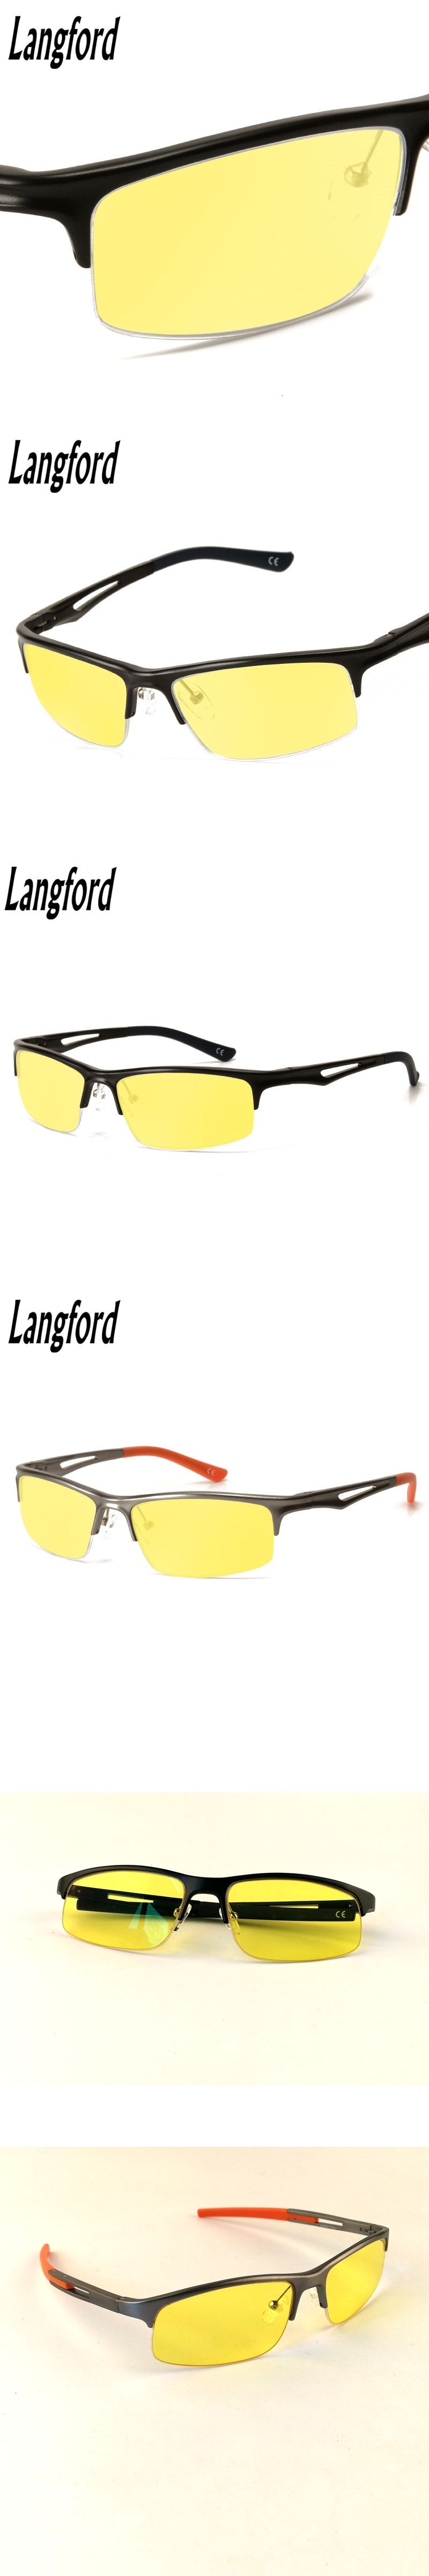 0bc4be5ce7 Langford Anti Blue Rays Computer Goggles Reading Glasses Spring legs mens  eyeglasses cool Gaming Glasses Protection